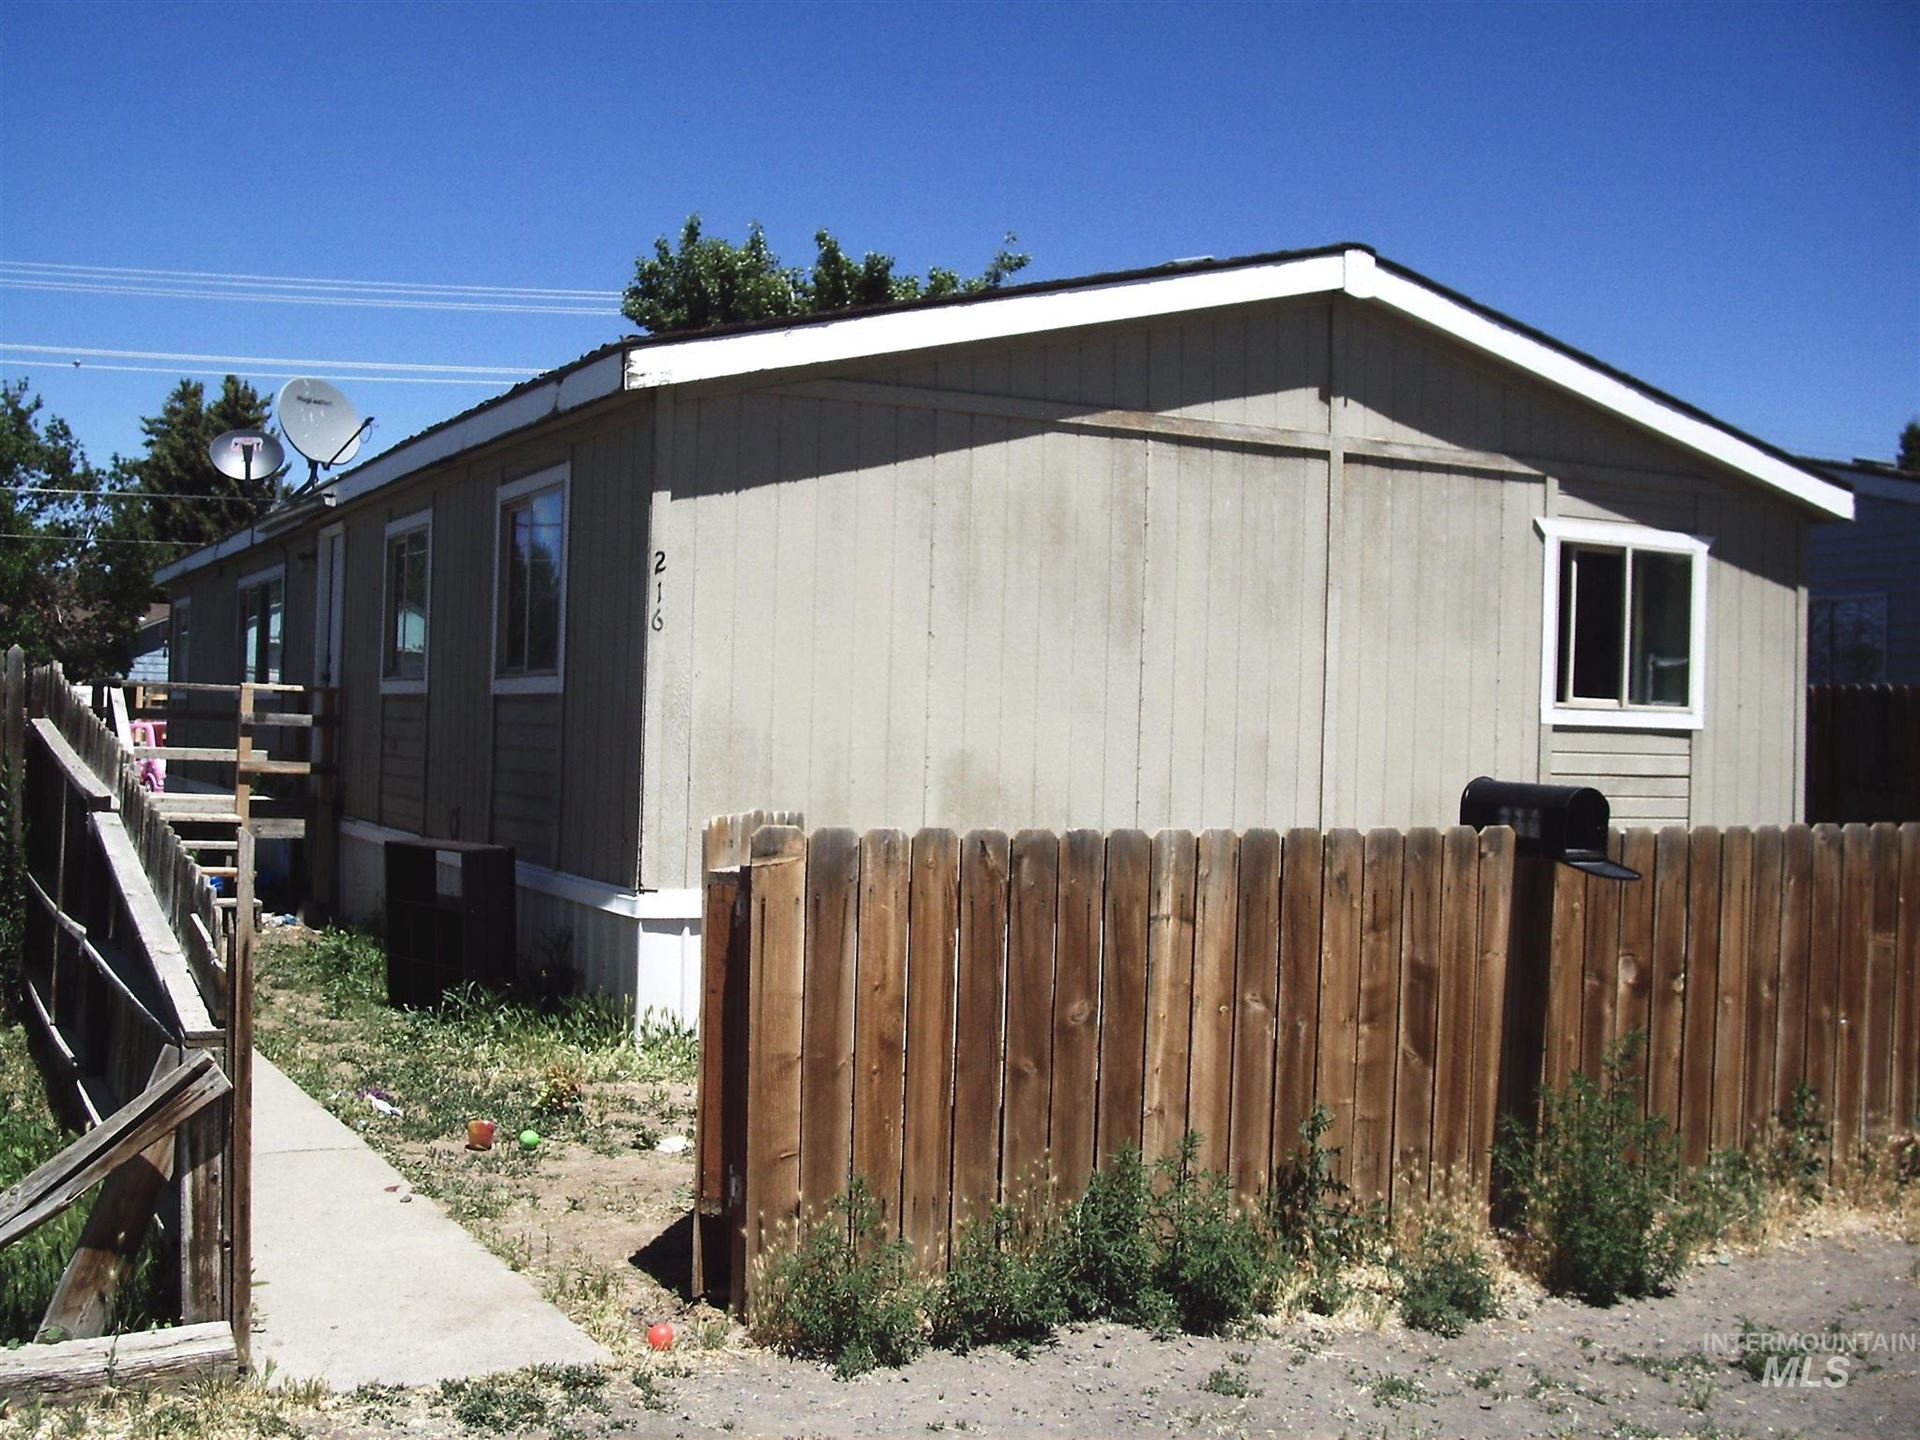 216 G Ave West, Jerome, ID 83338 - MLS#: 98802700